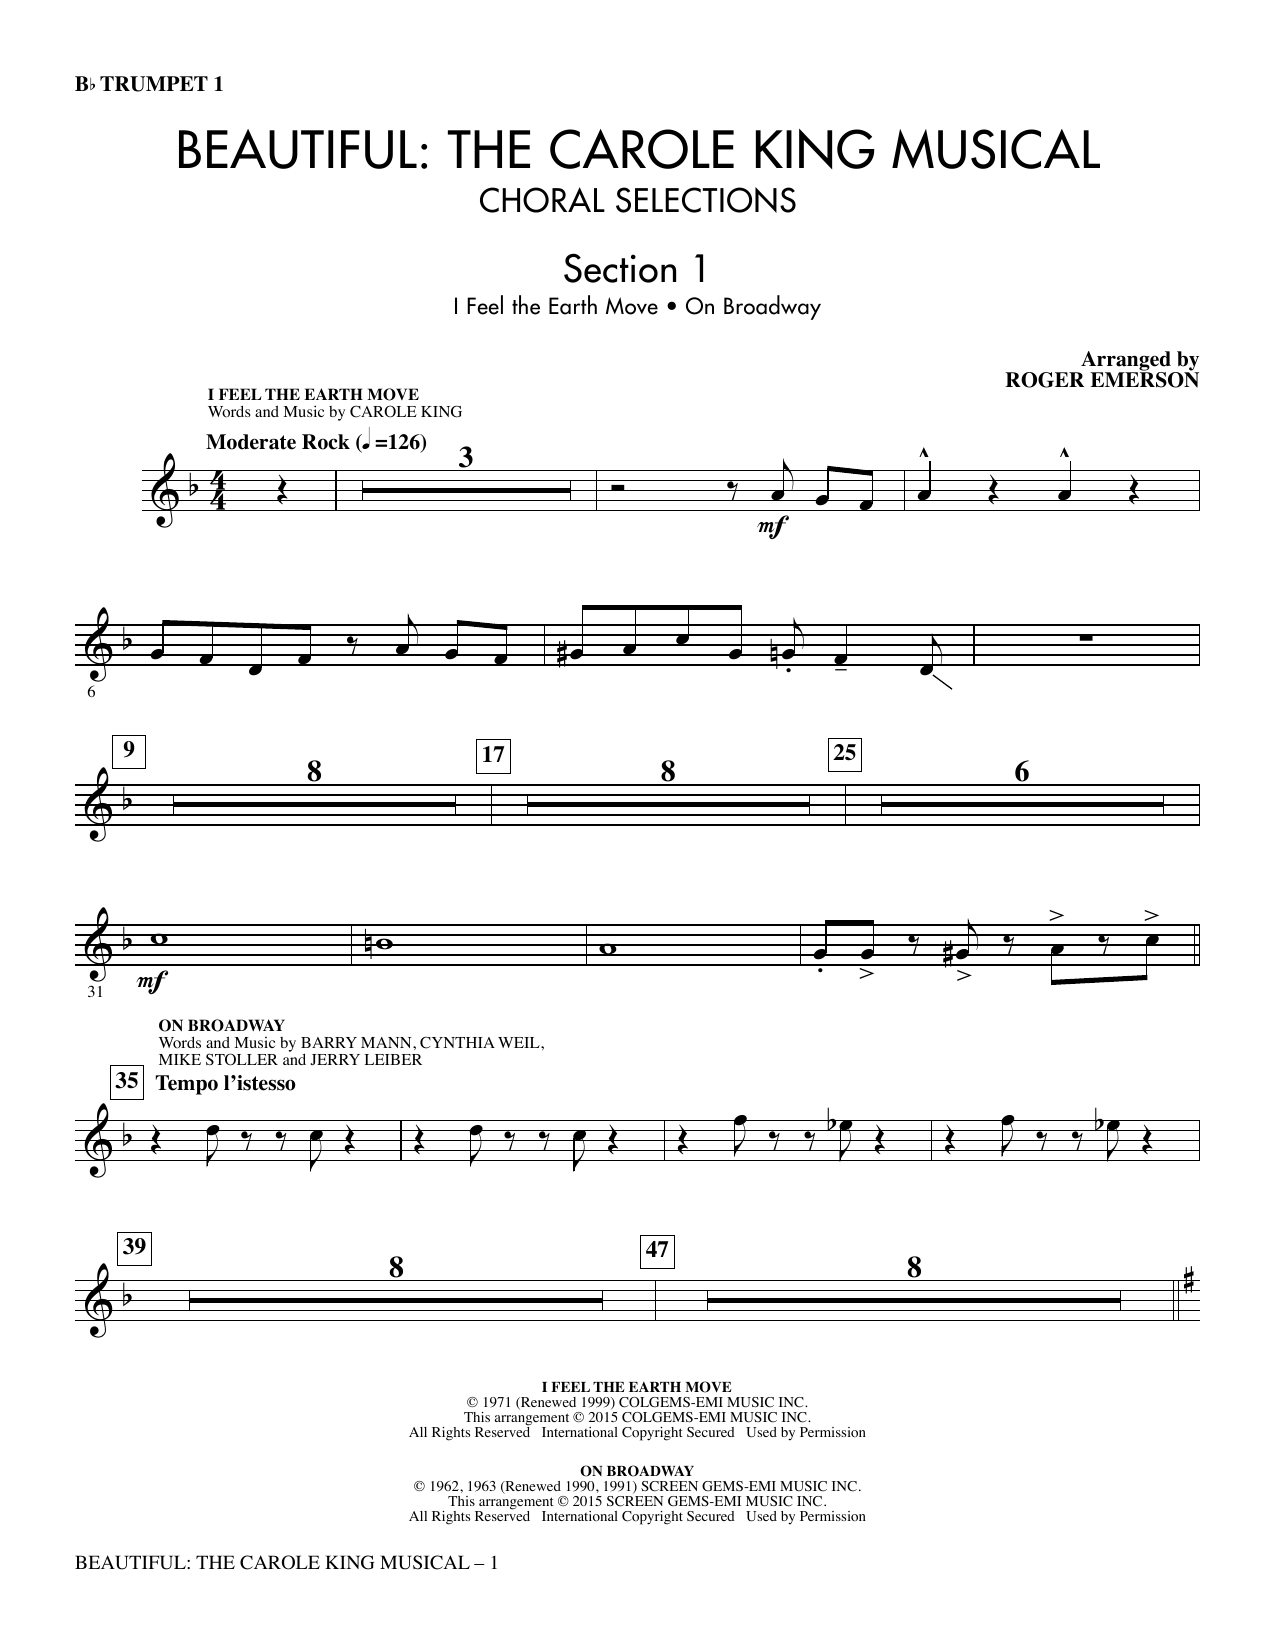 Beautiful: The Carole King Musical (Choral Selections) - Trumpet 1 sheet music